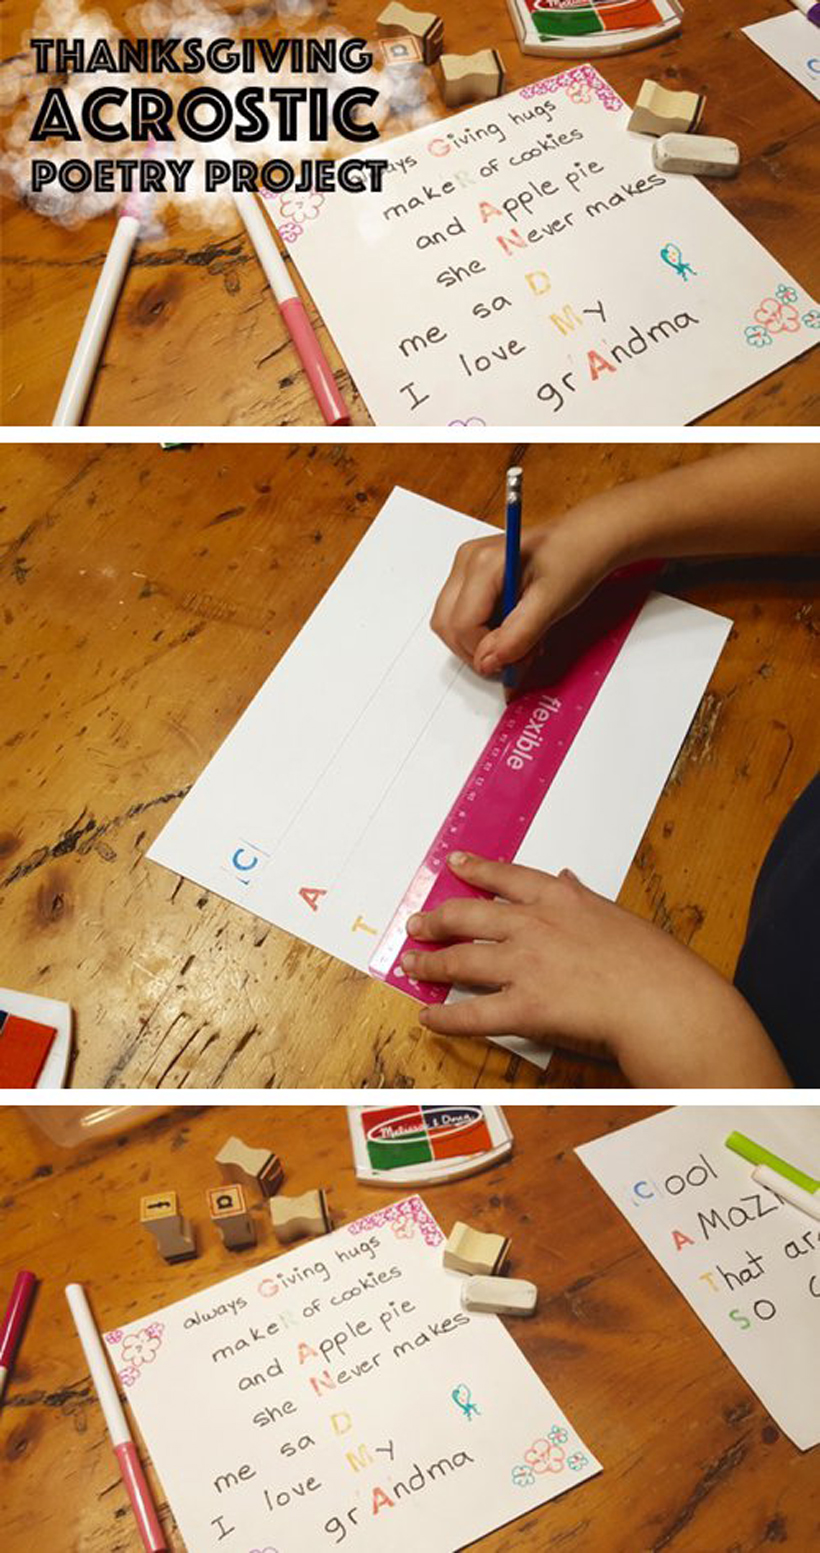 Being Thankful – An Acrostic Poem Project *See how kids can share thankful thoughts and communicate feelings by creating Acrostic poems with family, on the Melissa & Doug Blog.